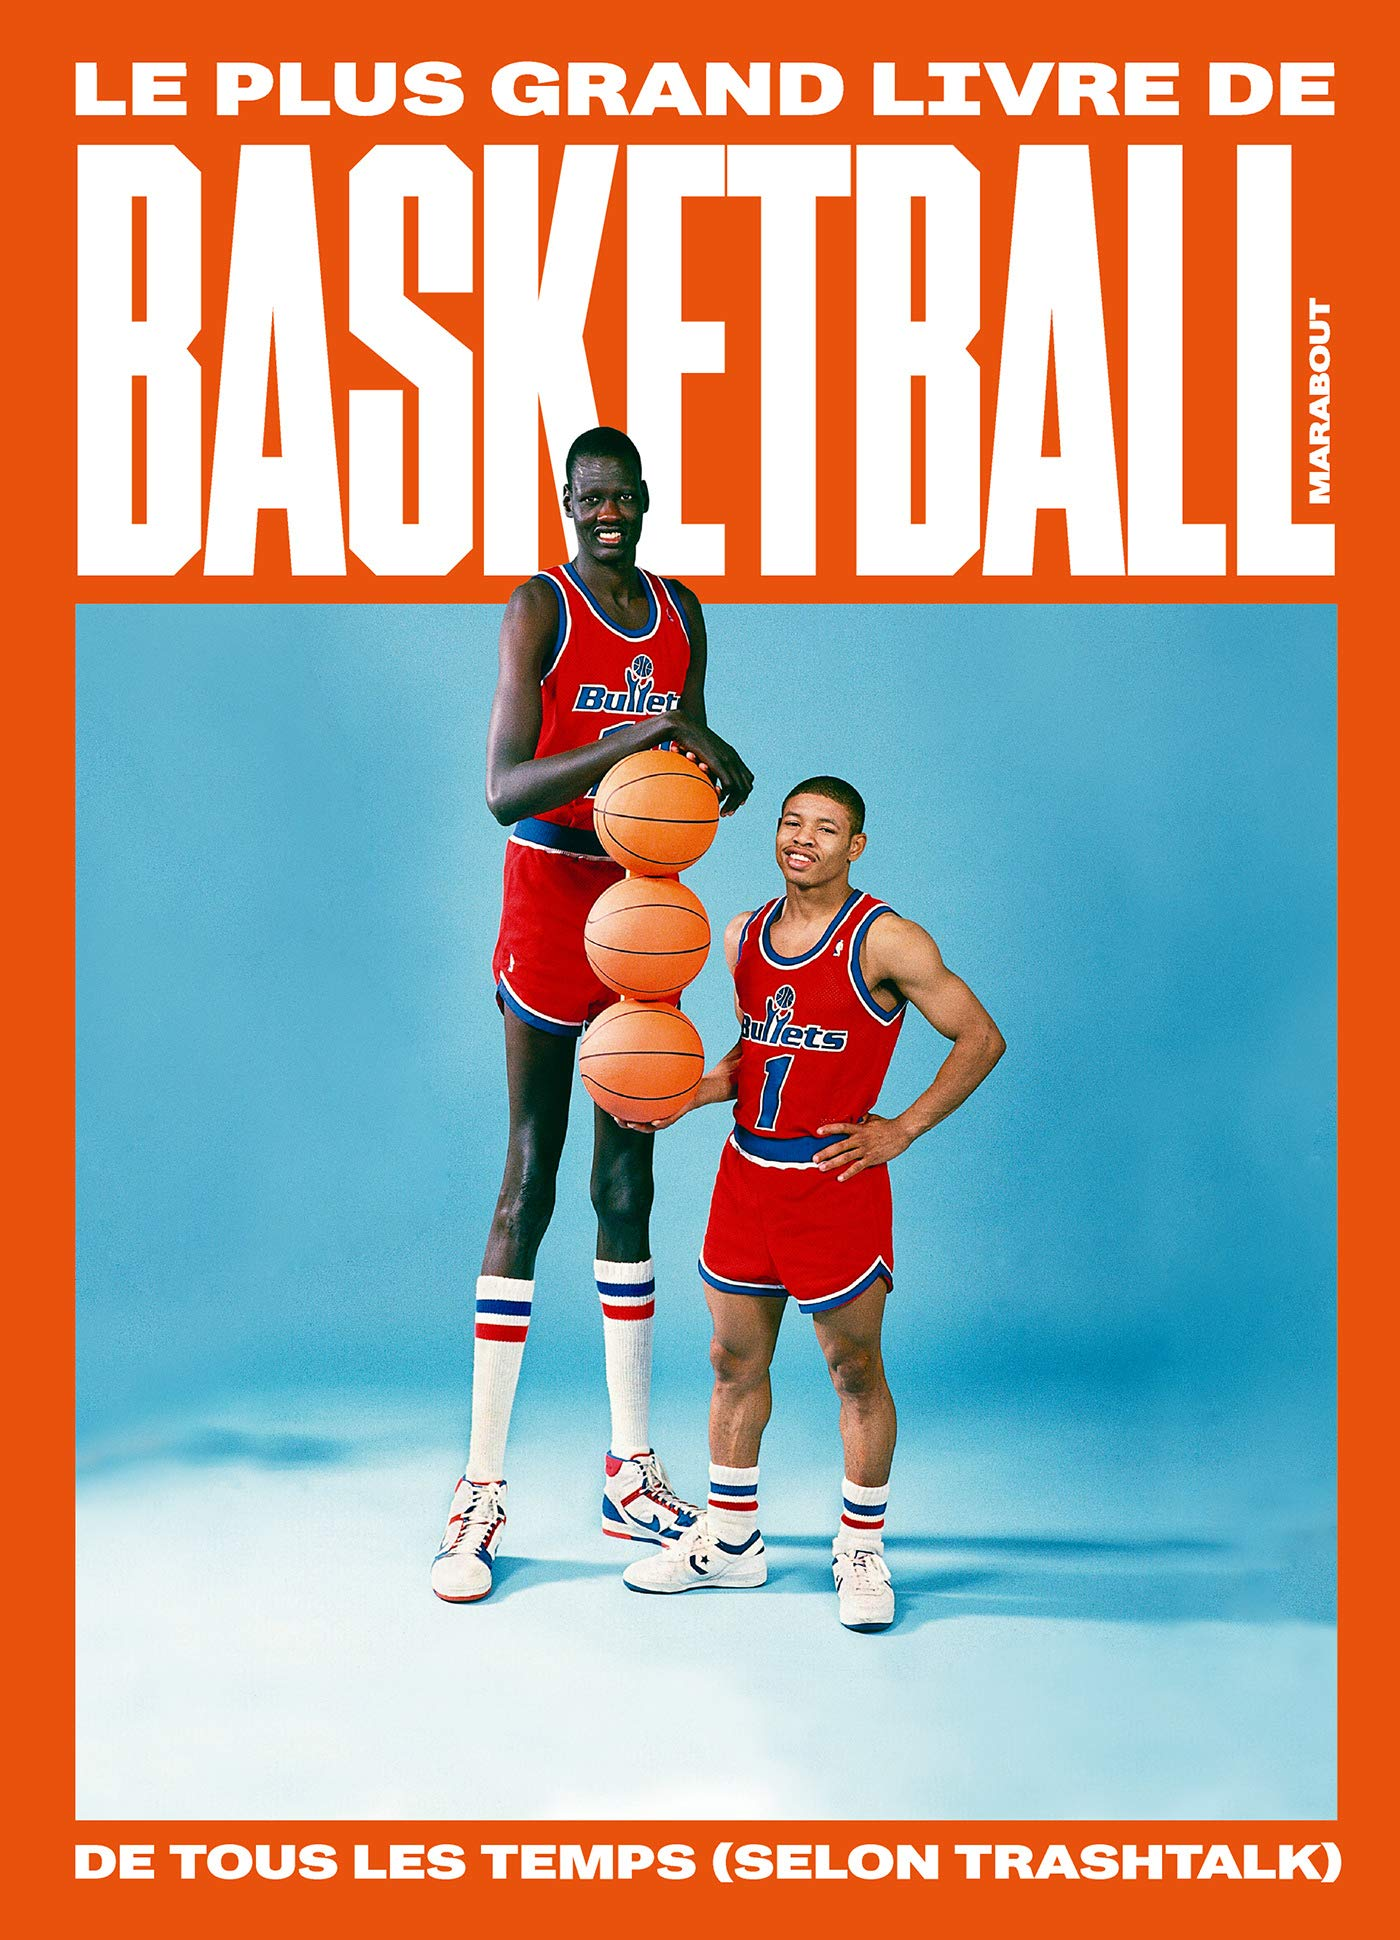 Le plus grand livre de basket-ball de tous les temps selon TrashTalk : 31581 Sports: Amazon.es: Trashtalk, Fournier, Evan: Libros en idiomas extranjeros